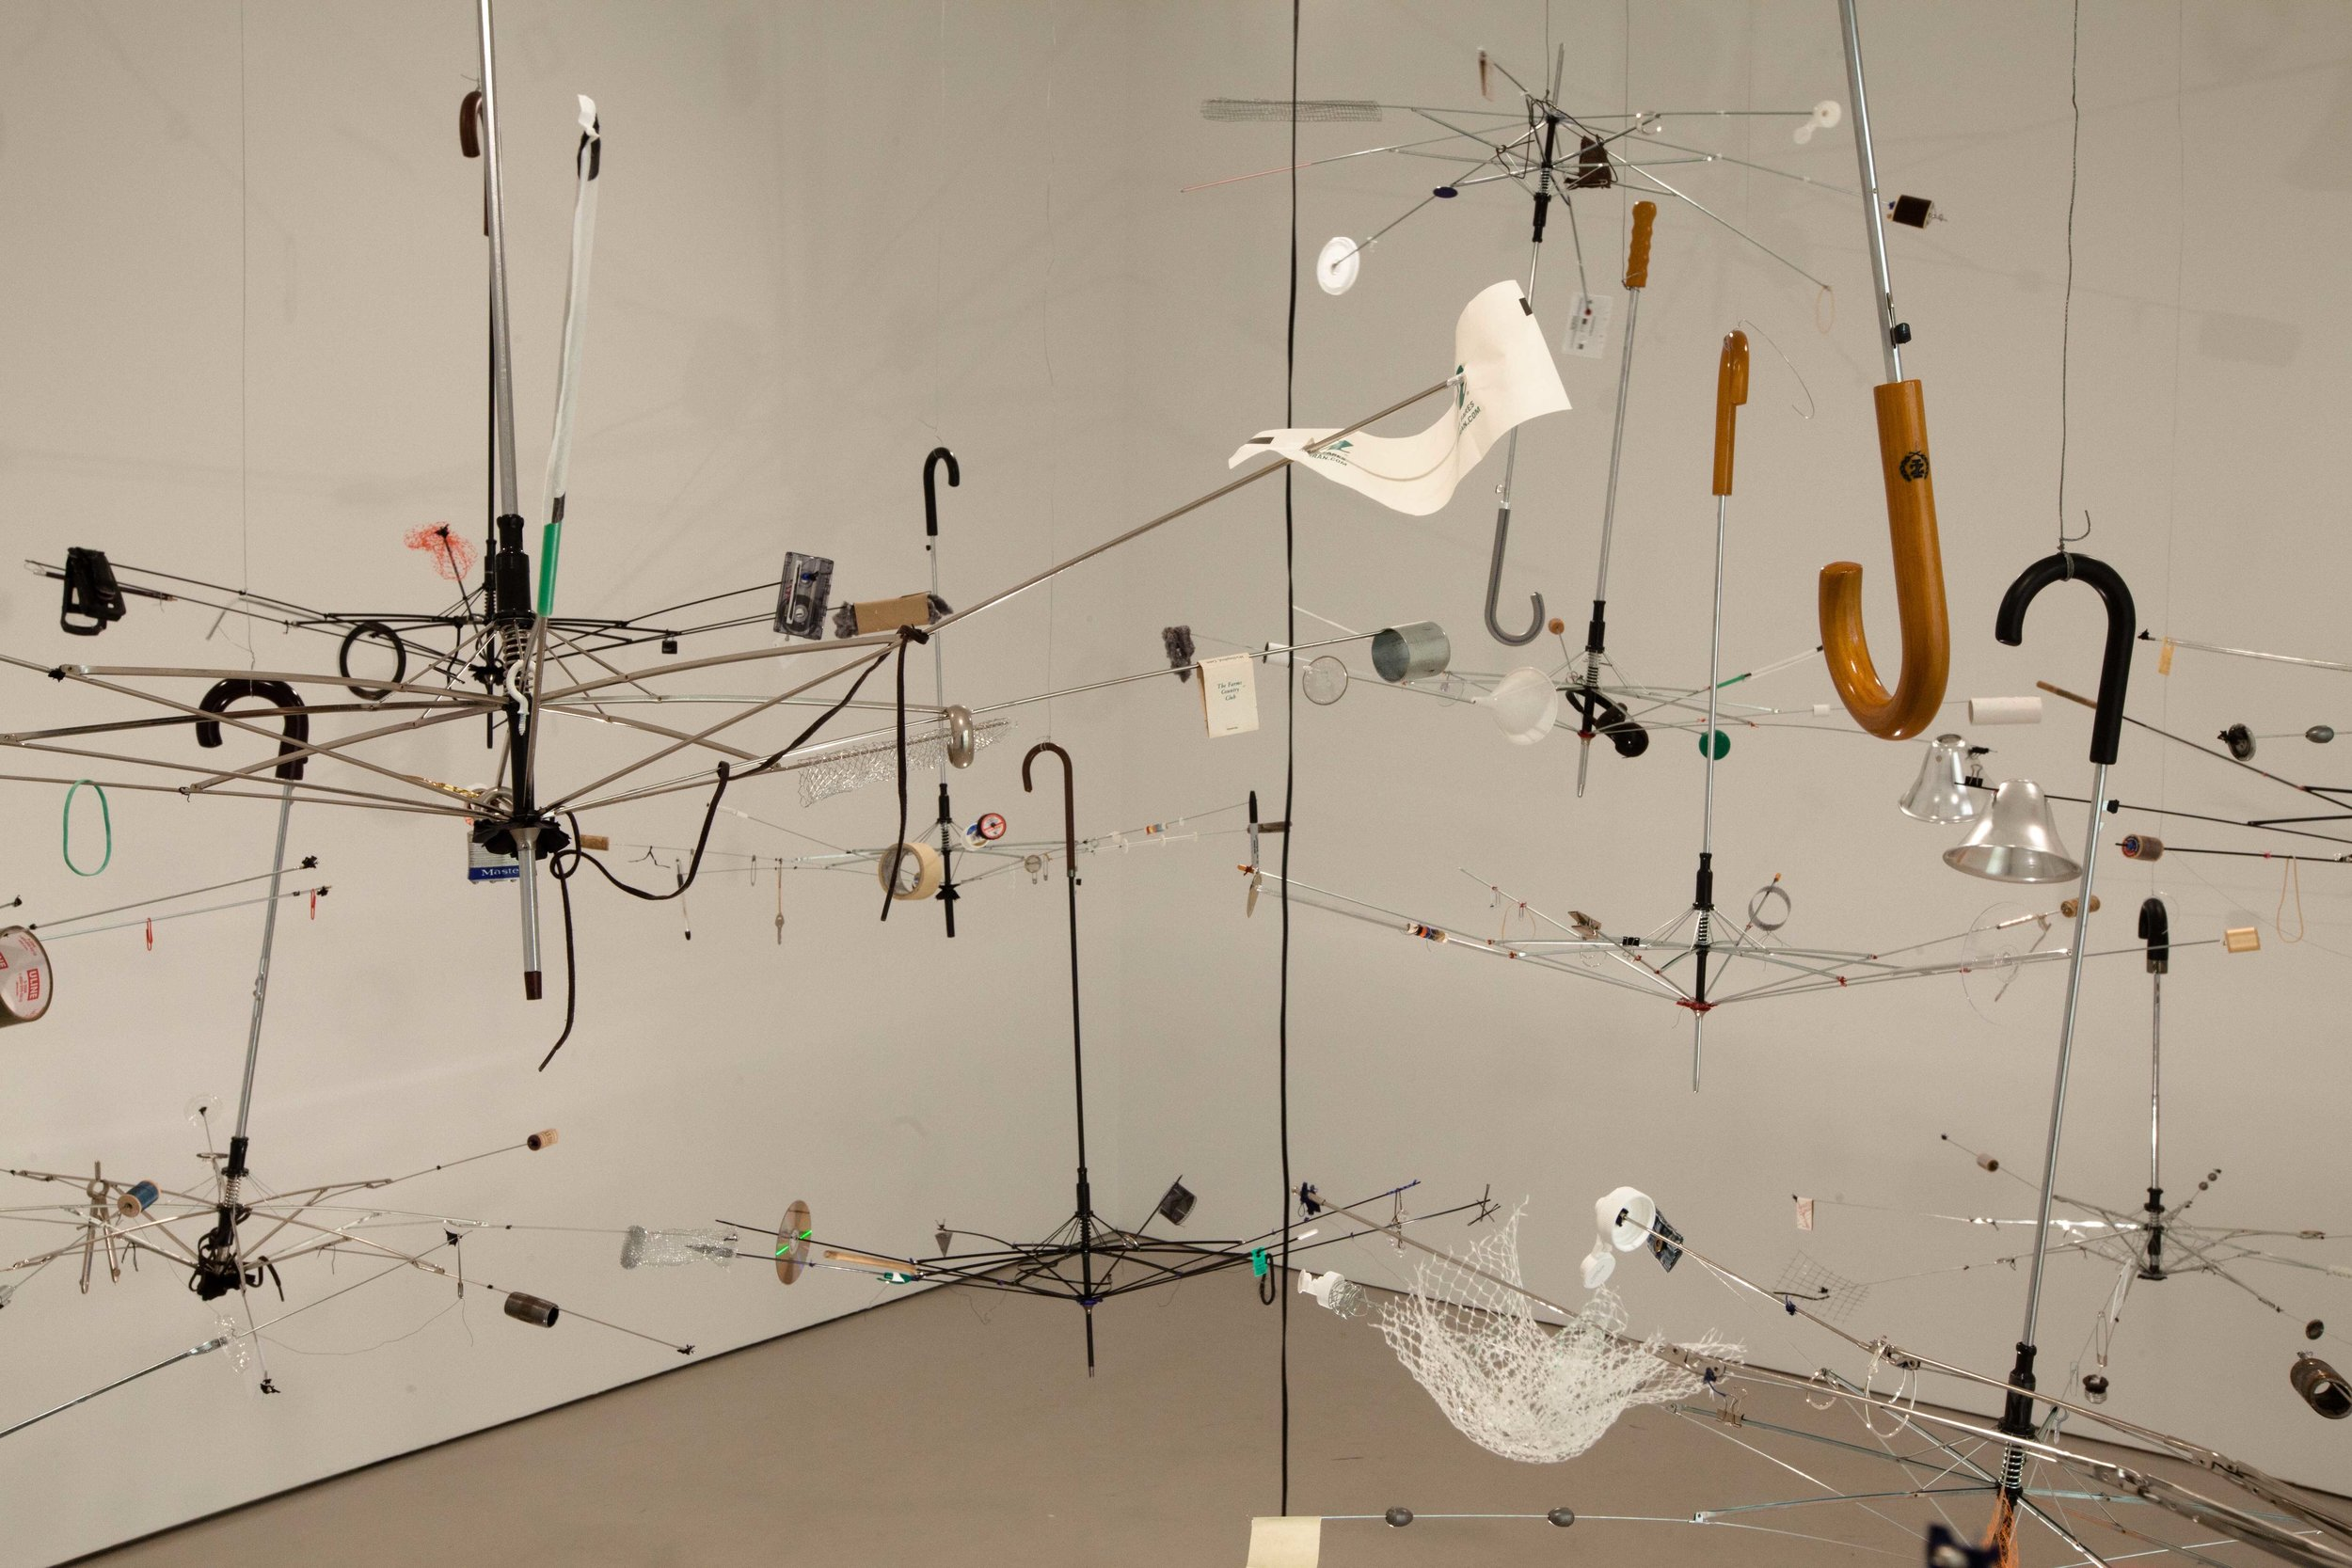 Orrery  , 2011  umbrellas, turntable, studio detritus and mixed media  dimensions variable